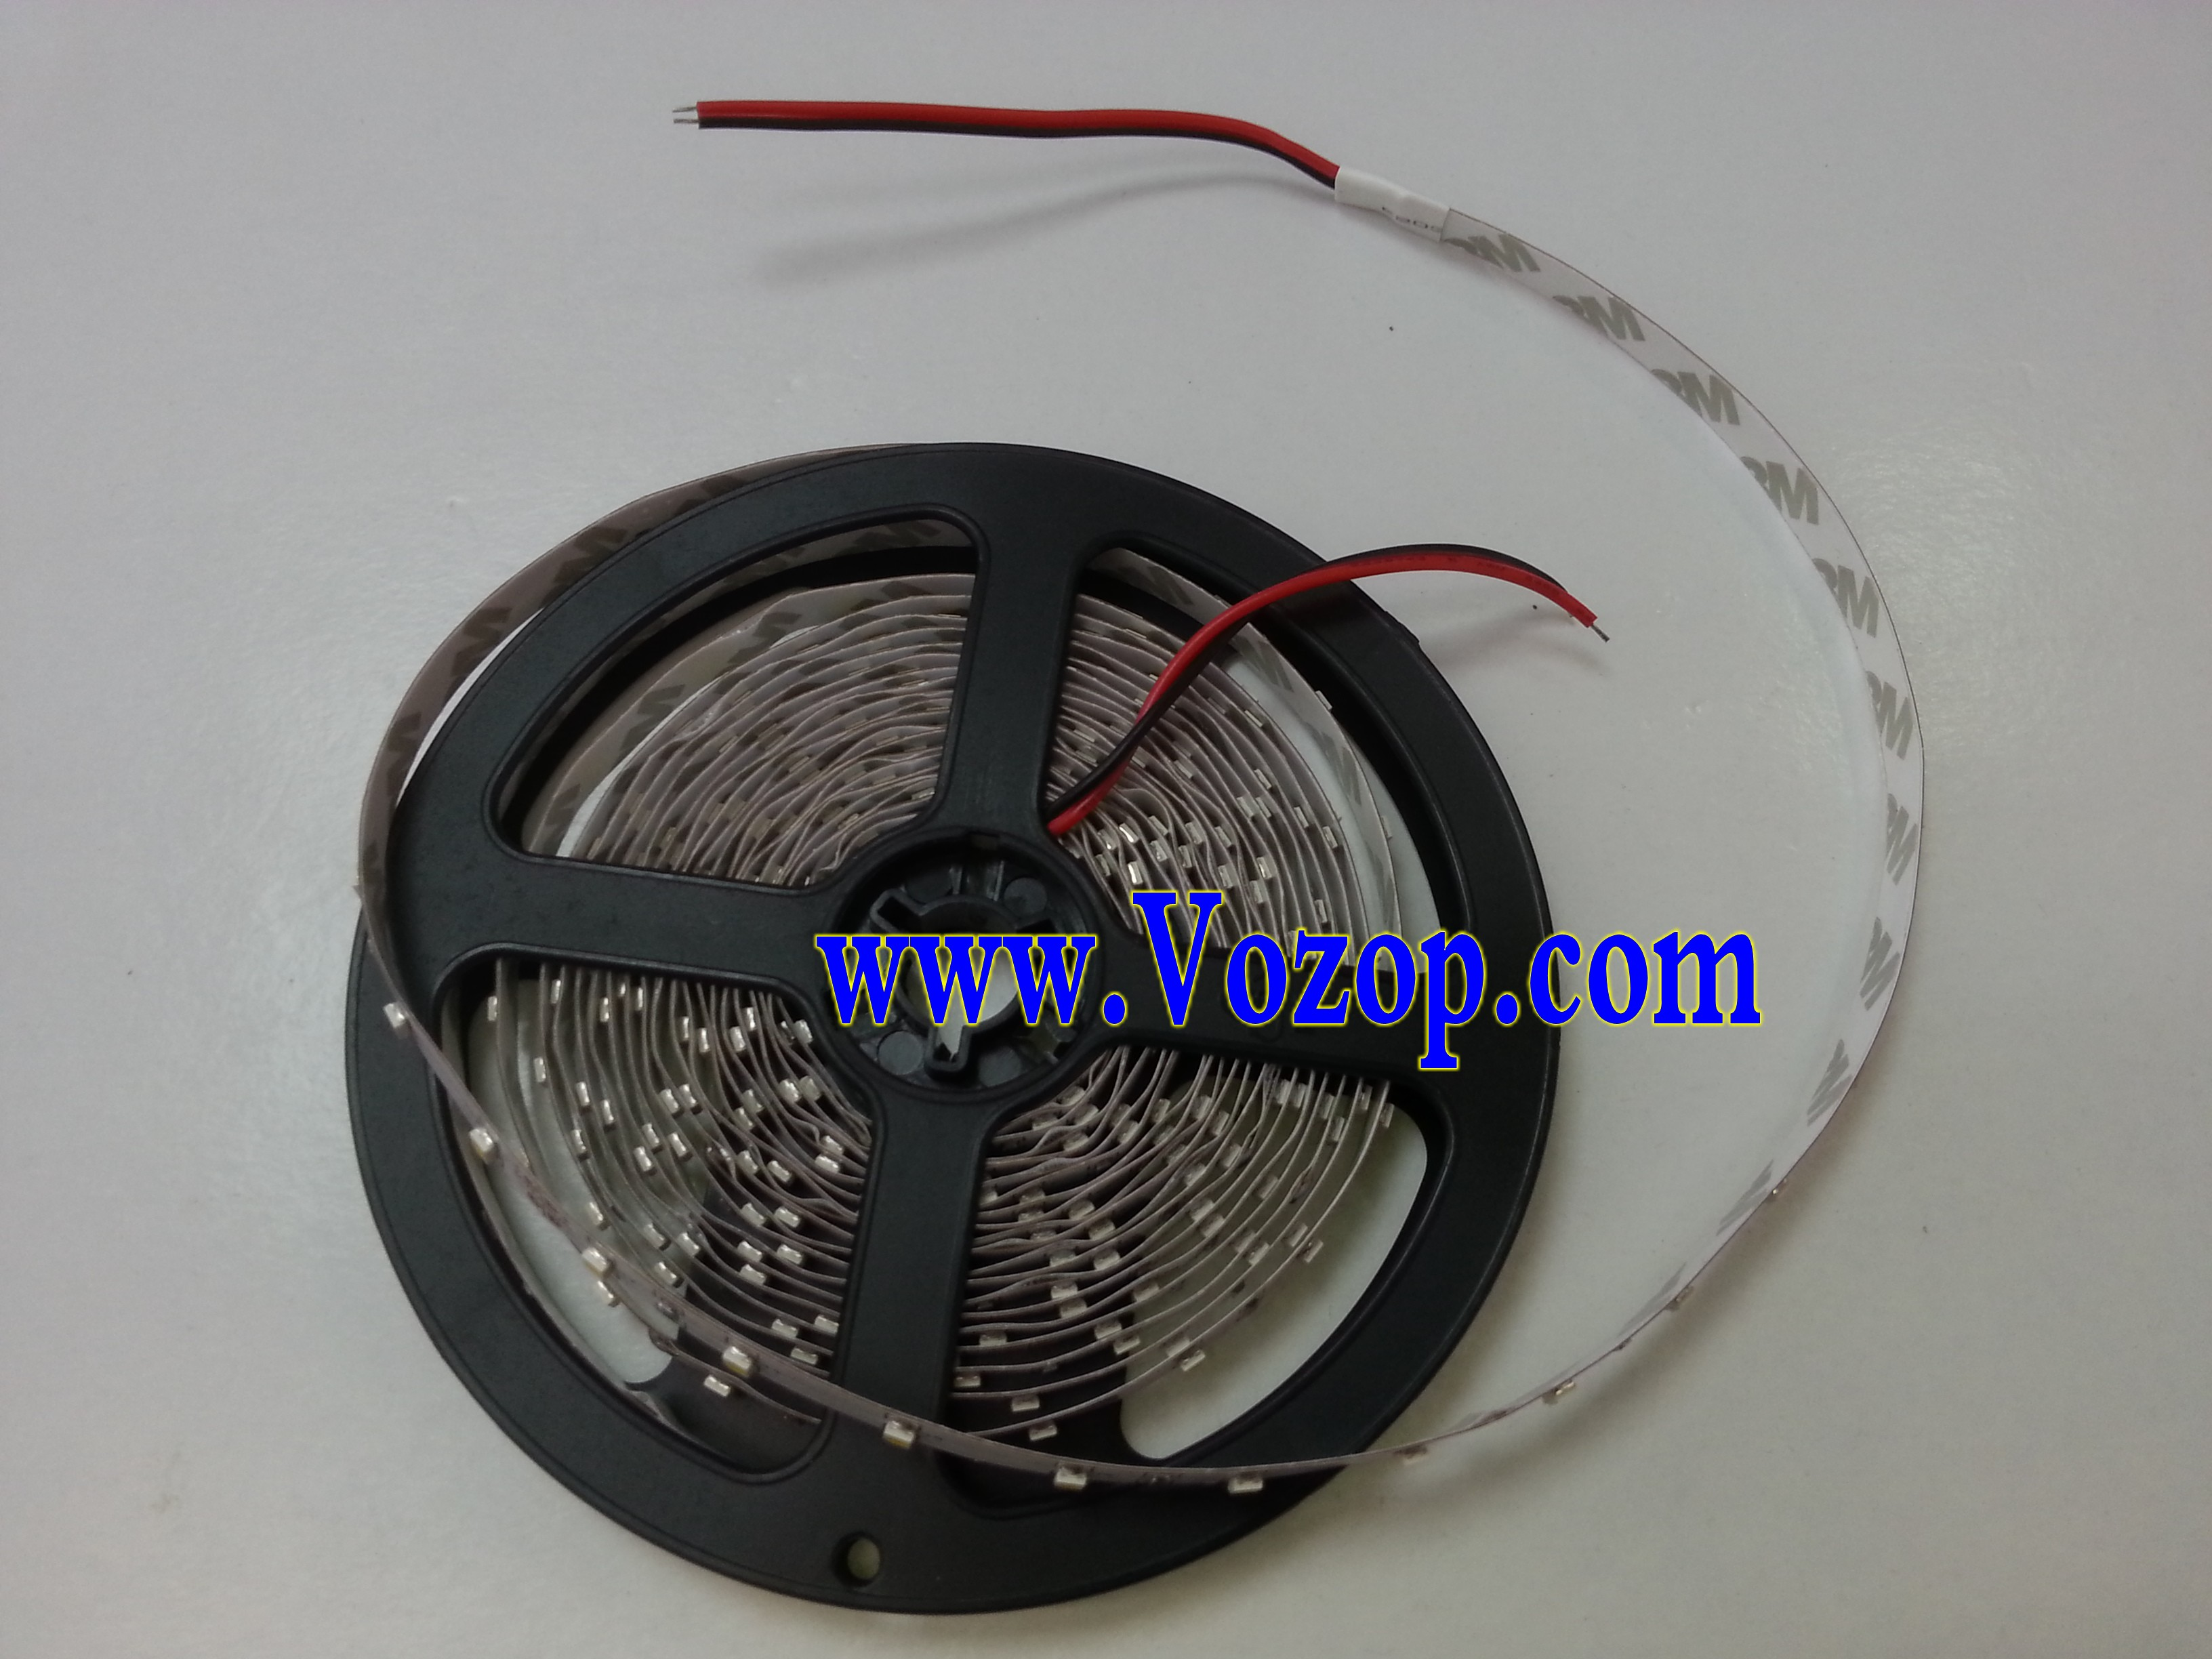 DC_24V_3528_LED_Light_Strip_5M_300_LEDs_Lighting_Tape_light